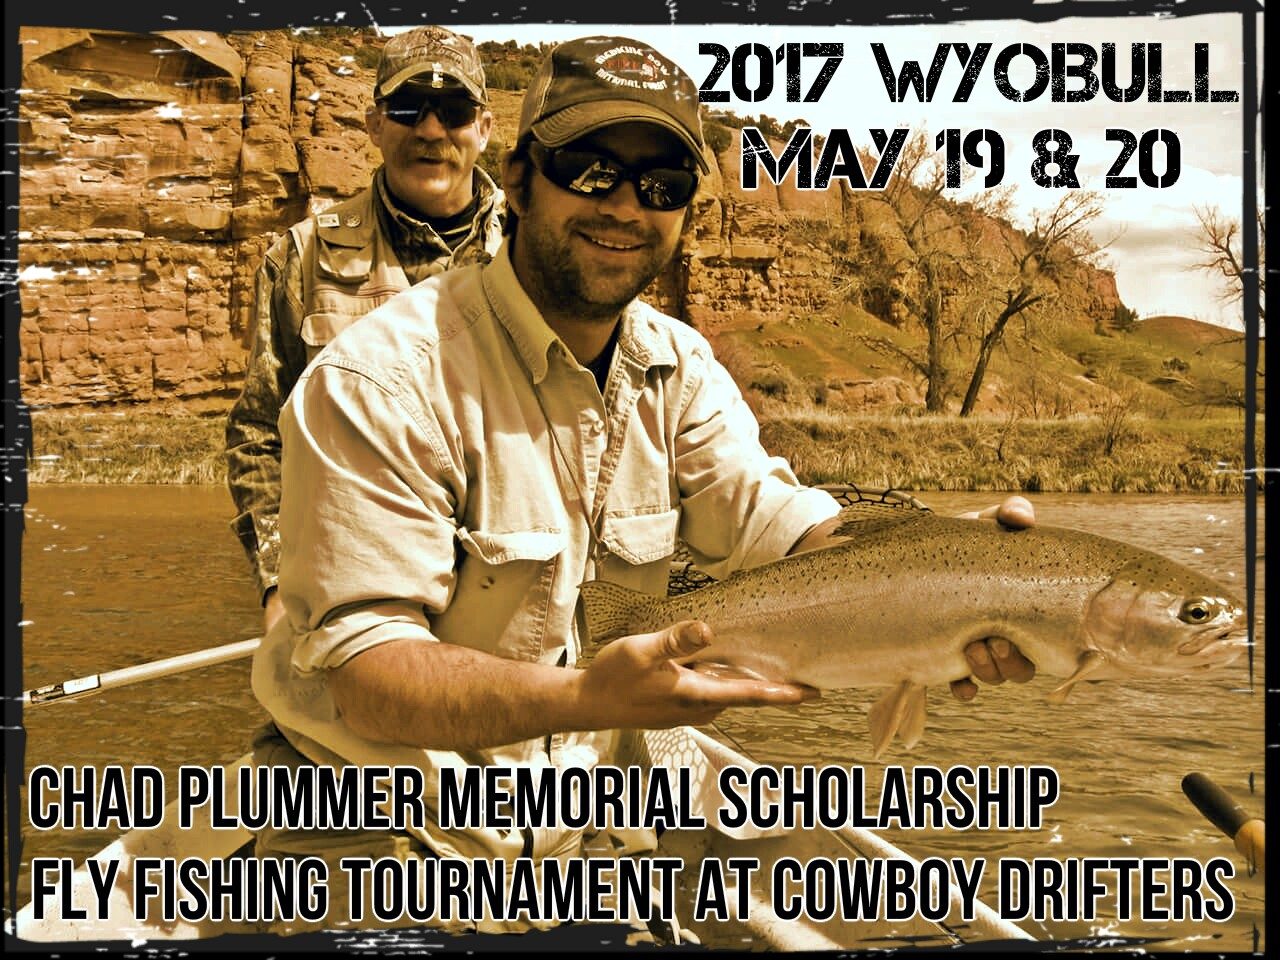 Fly Fishing Tournament Cowboy Drifters - Chad Plummer